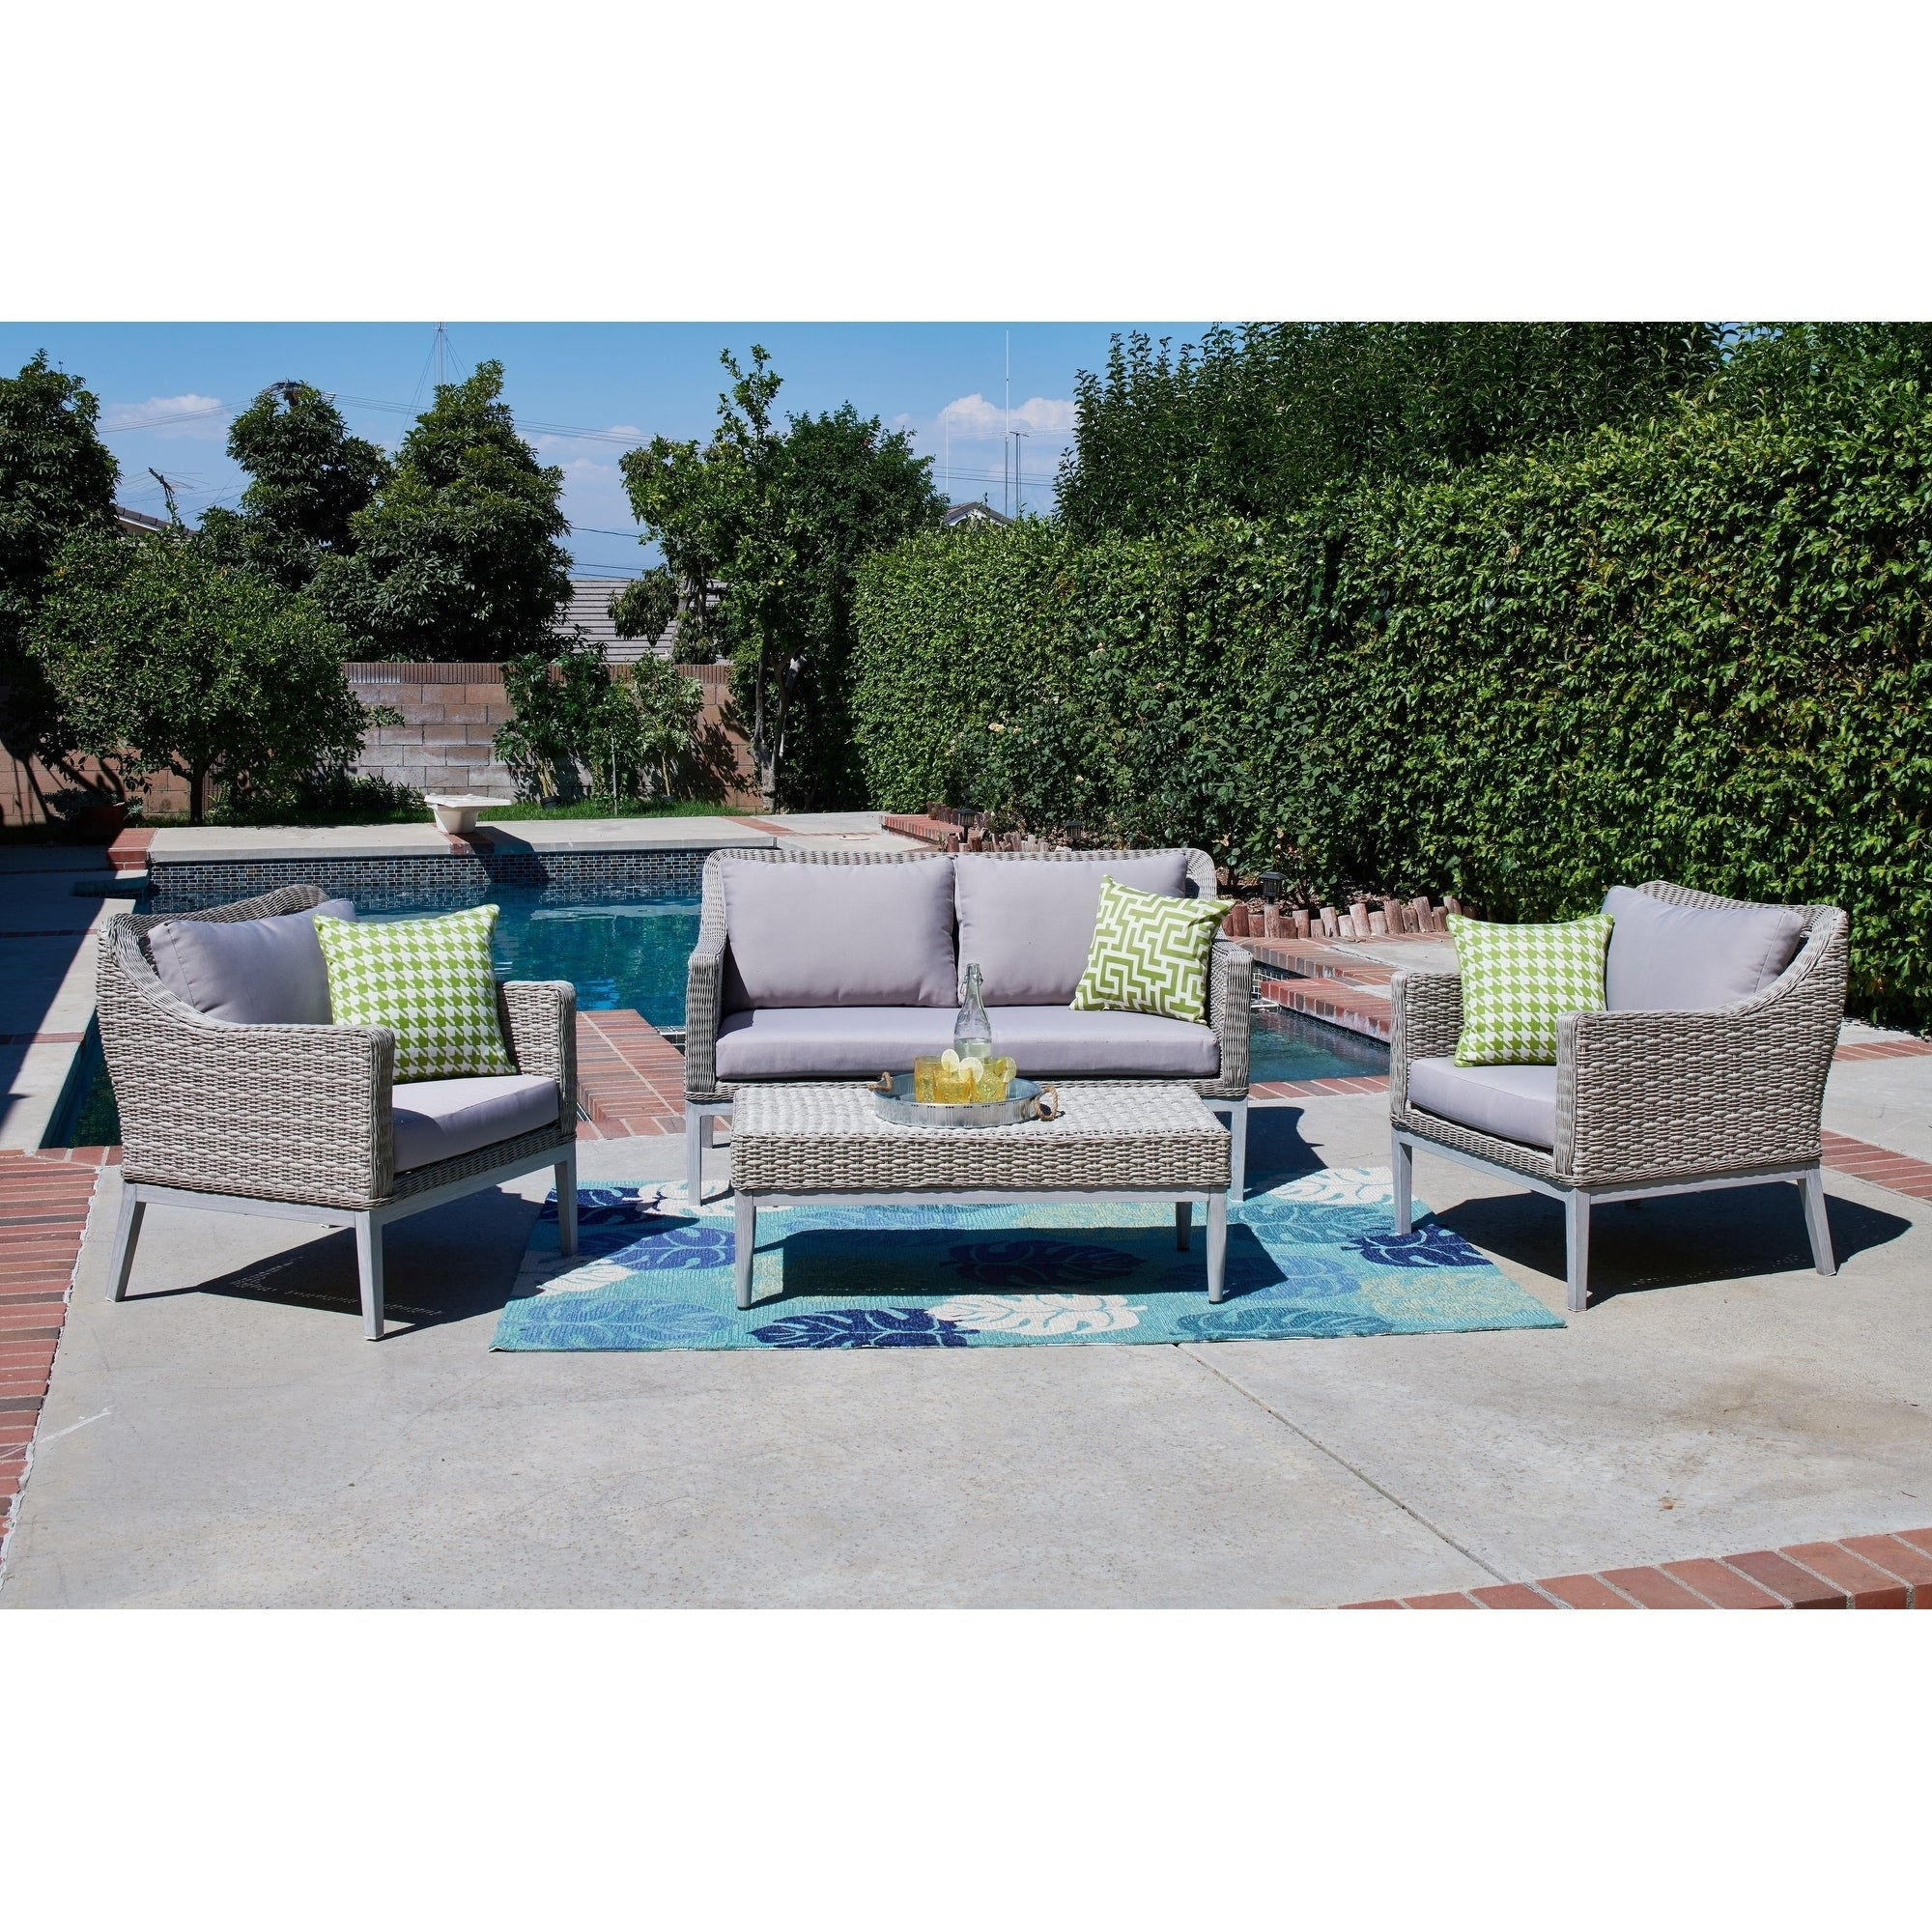 Monti 4 Piece Outdoor Wicker Conversation Set